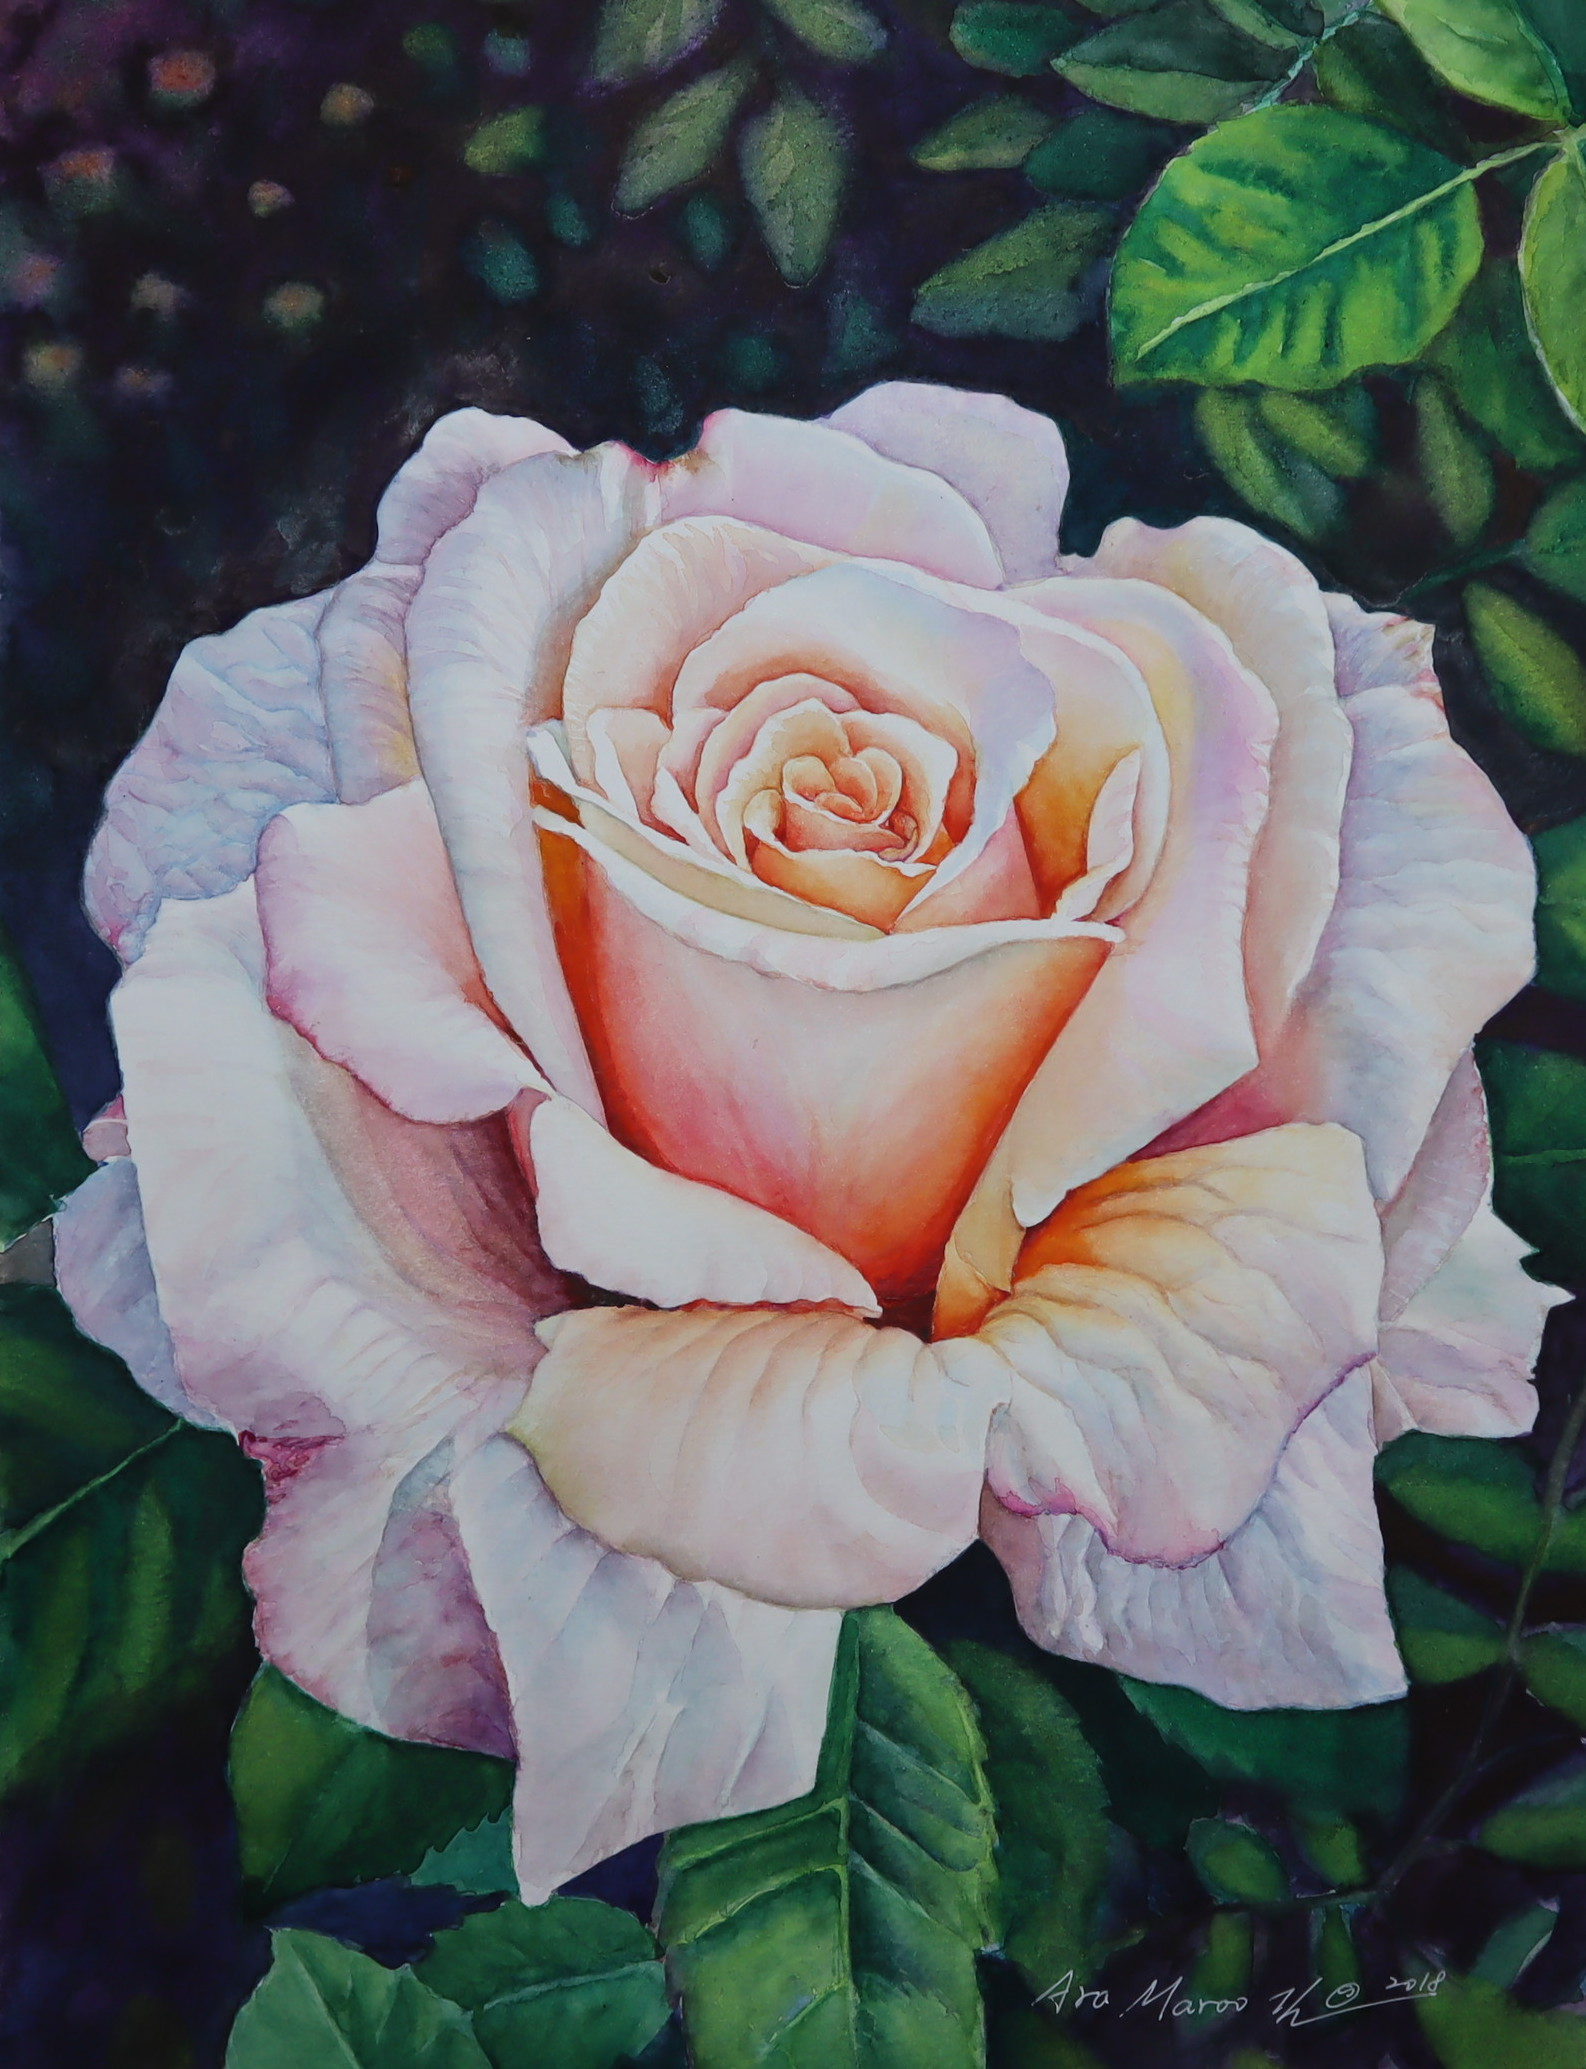 The Rose #2